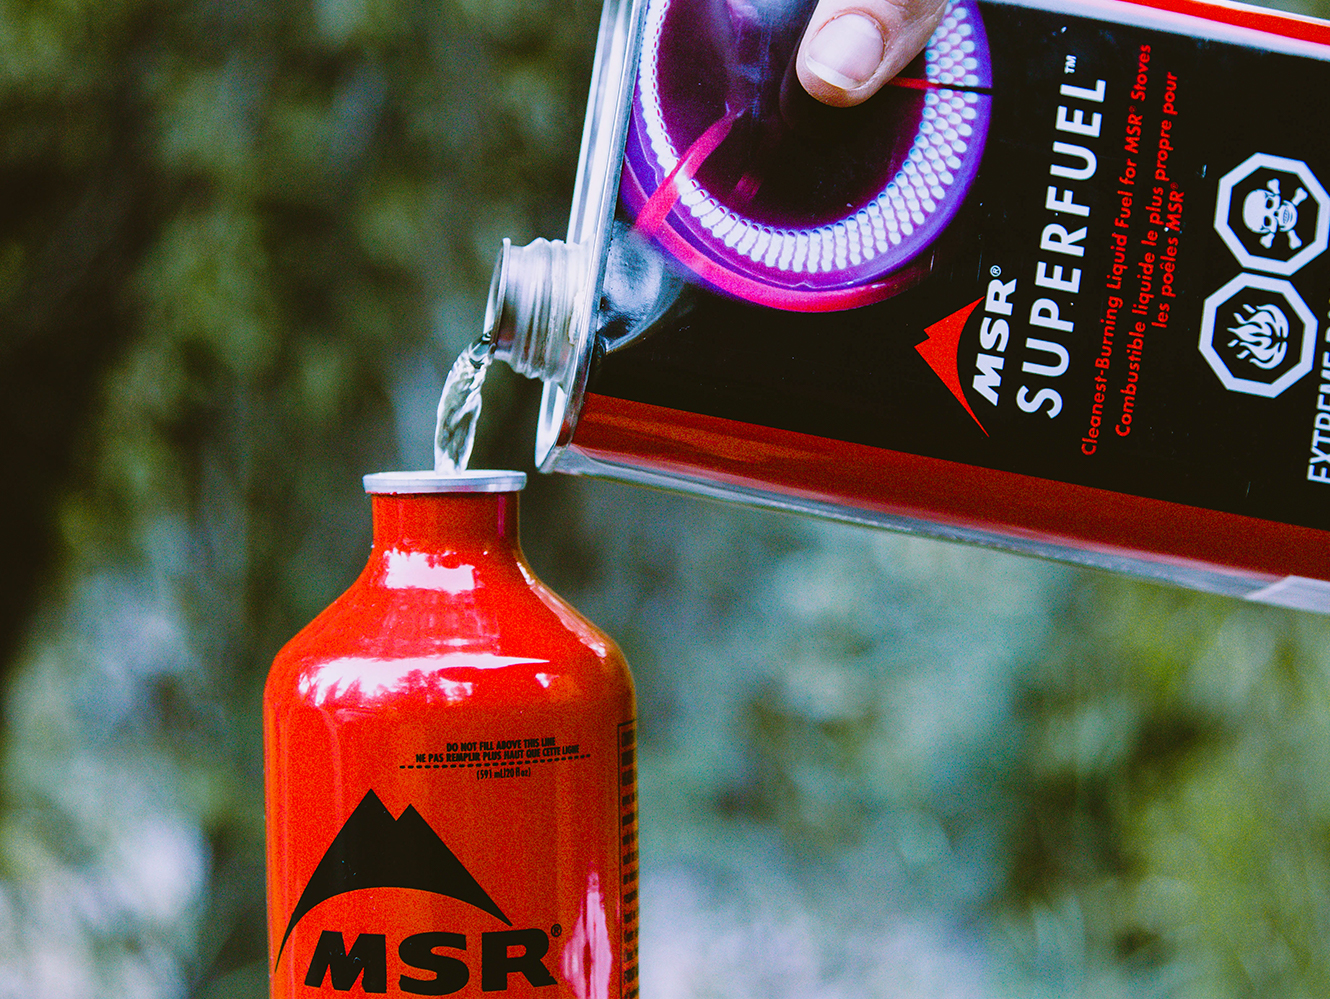 MSR Superfuel being poured into canister